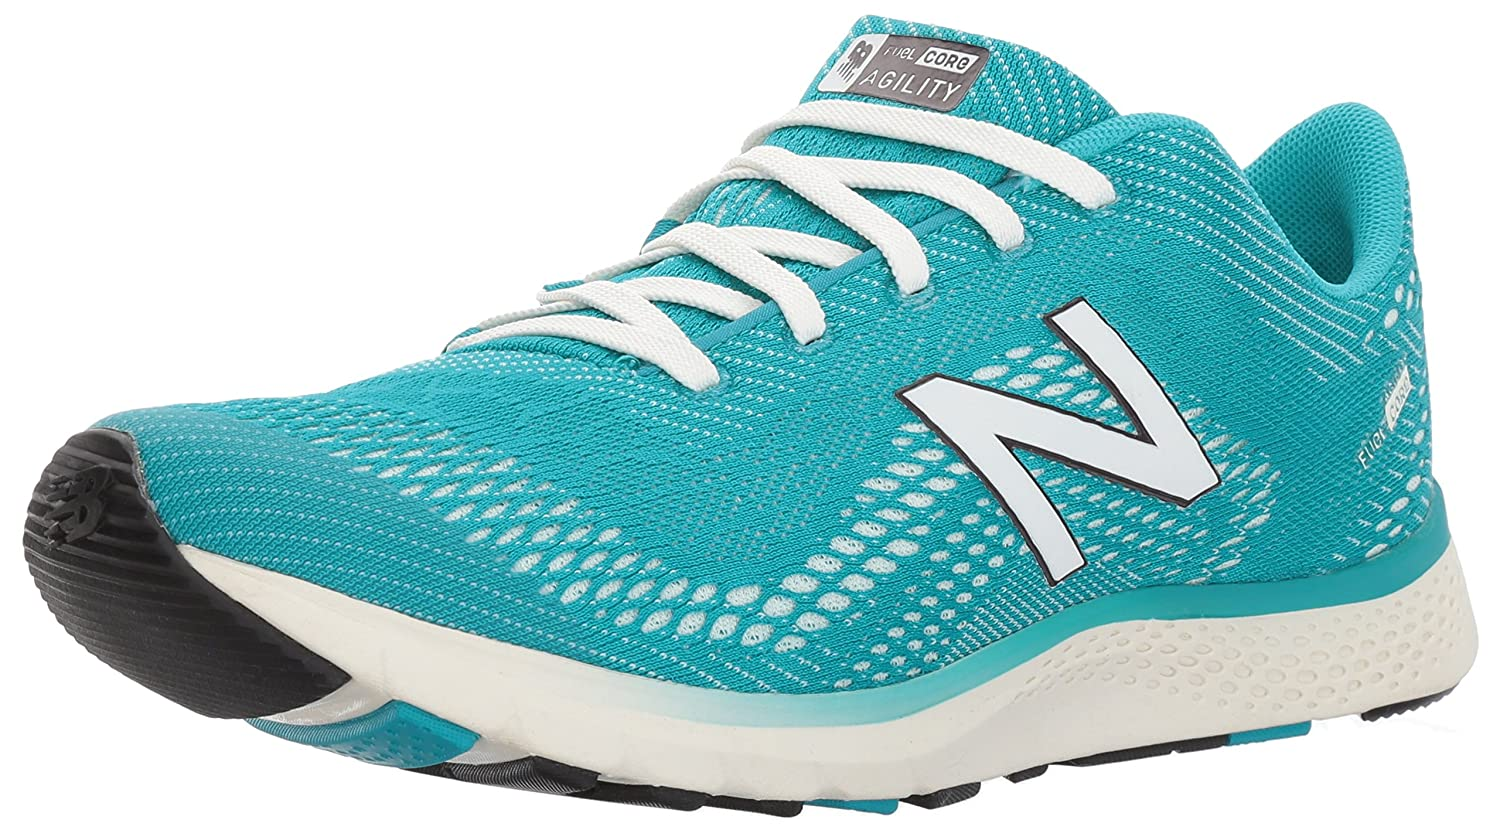 New Balance Women's FuelCore Agility v2 Cross Trainer B01M6CNV4S 9 B(M) US|Pisces